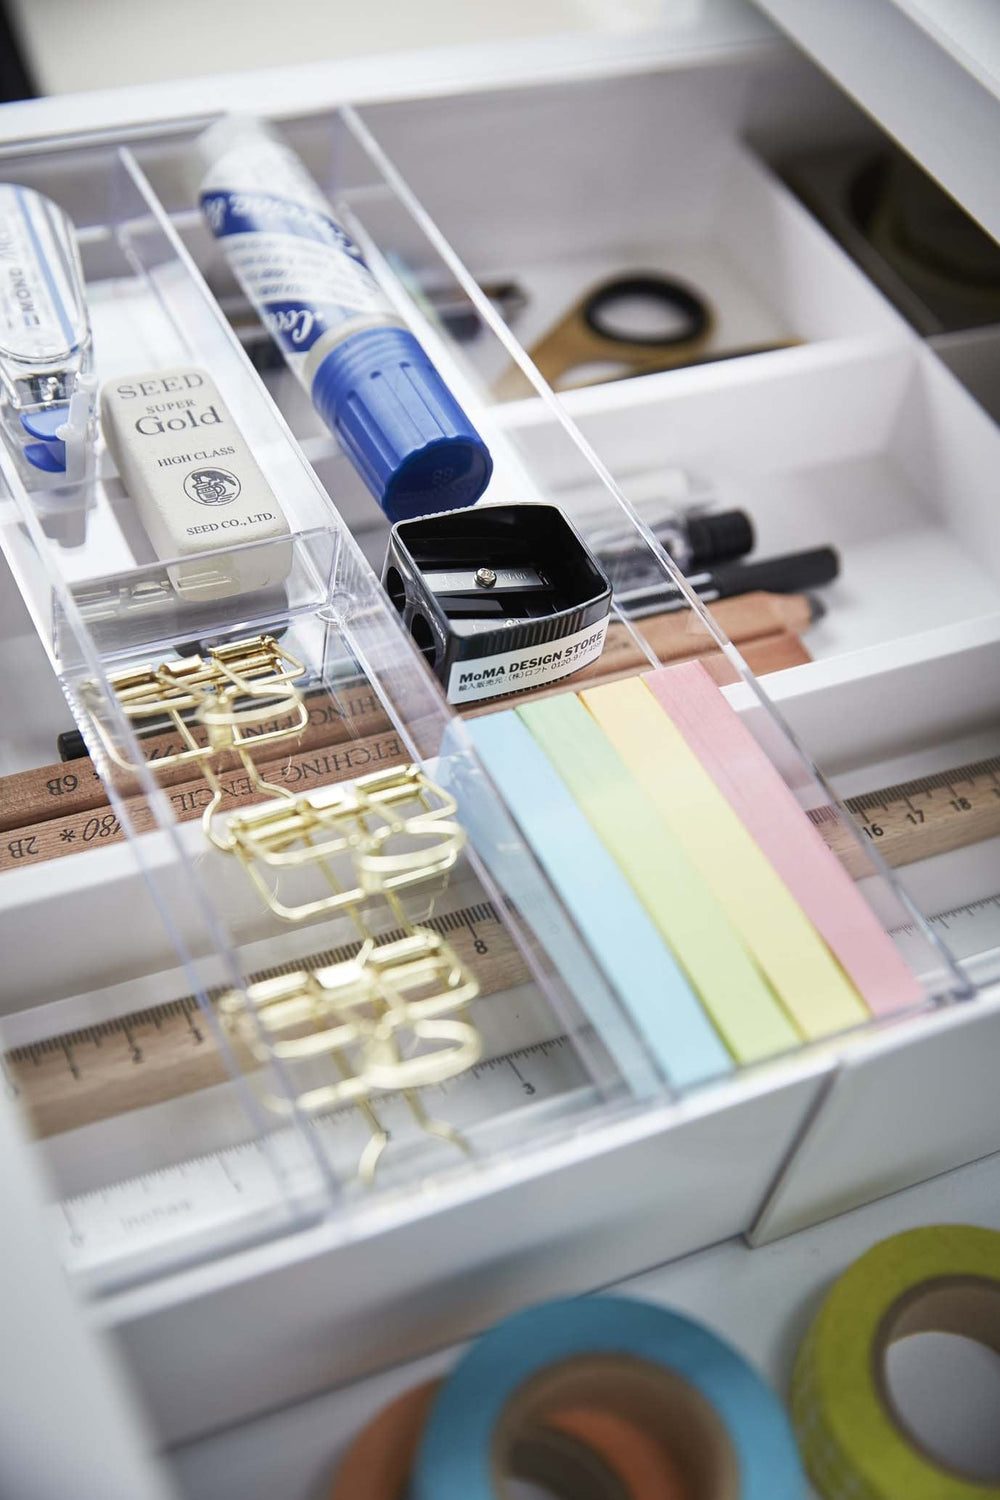 Yamazaki's white organizer filled with office supplies inside a desk drawer